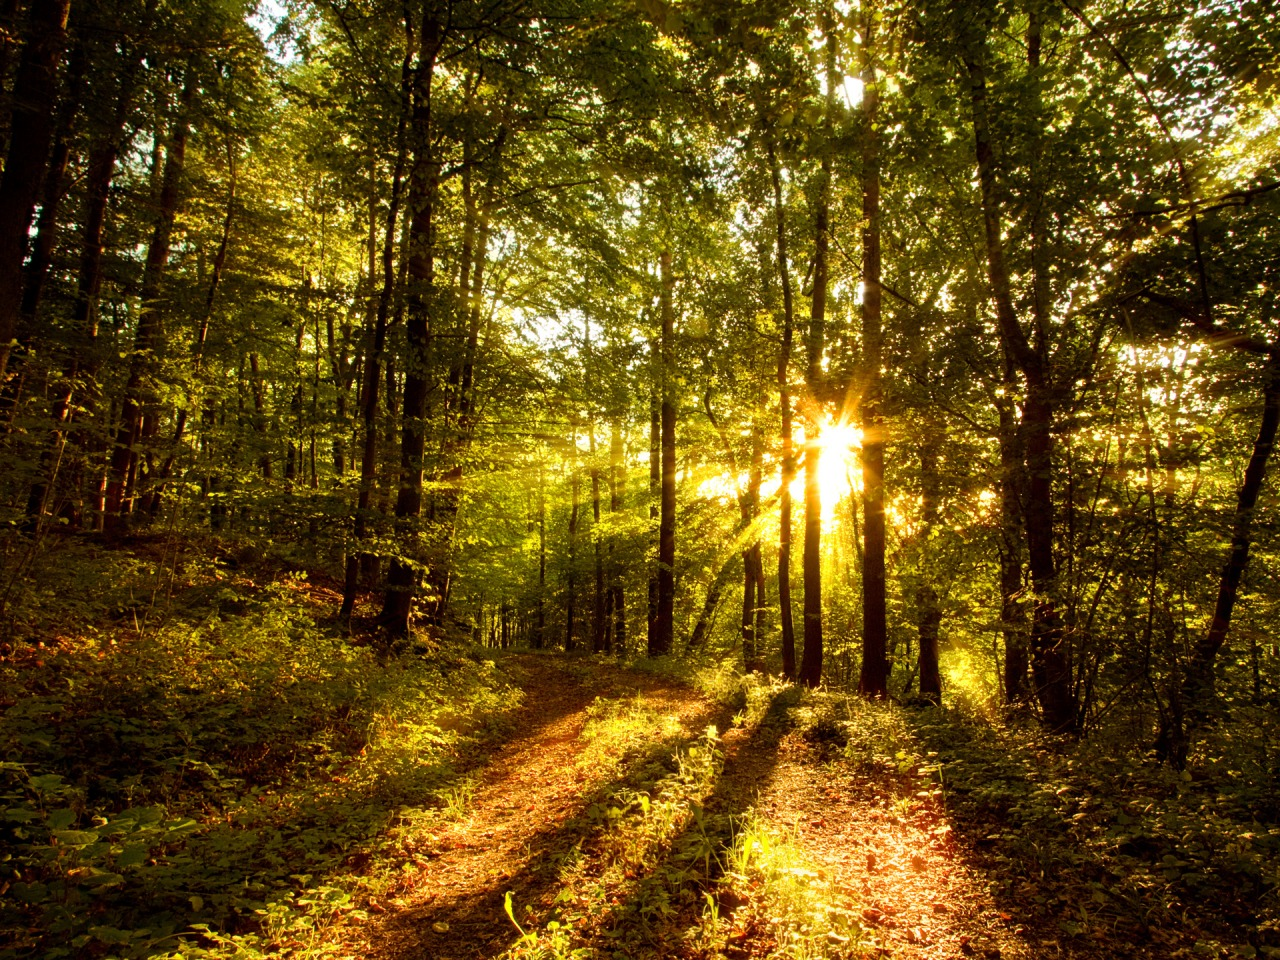 Forest Sun Wallpaper Landscape Nature Wallpapers In Jpg